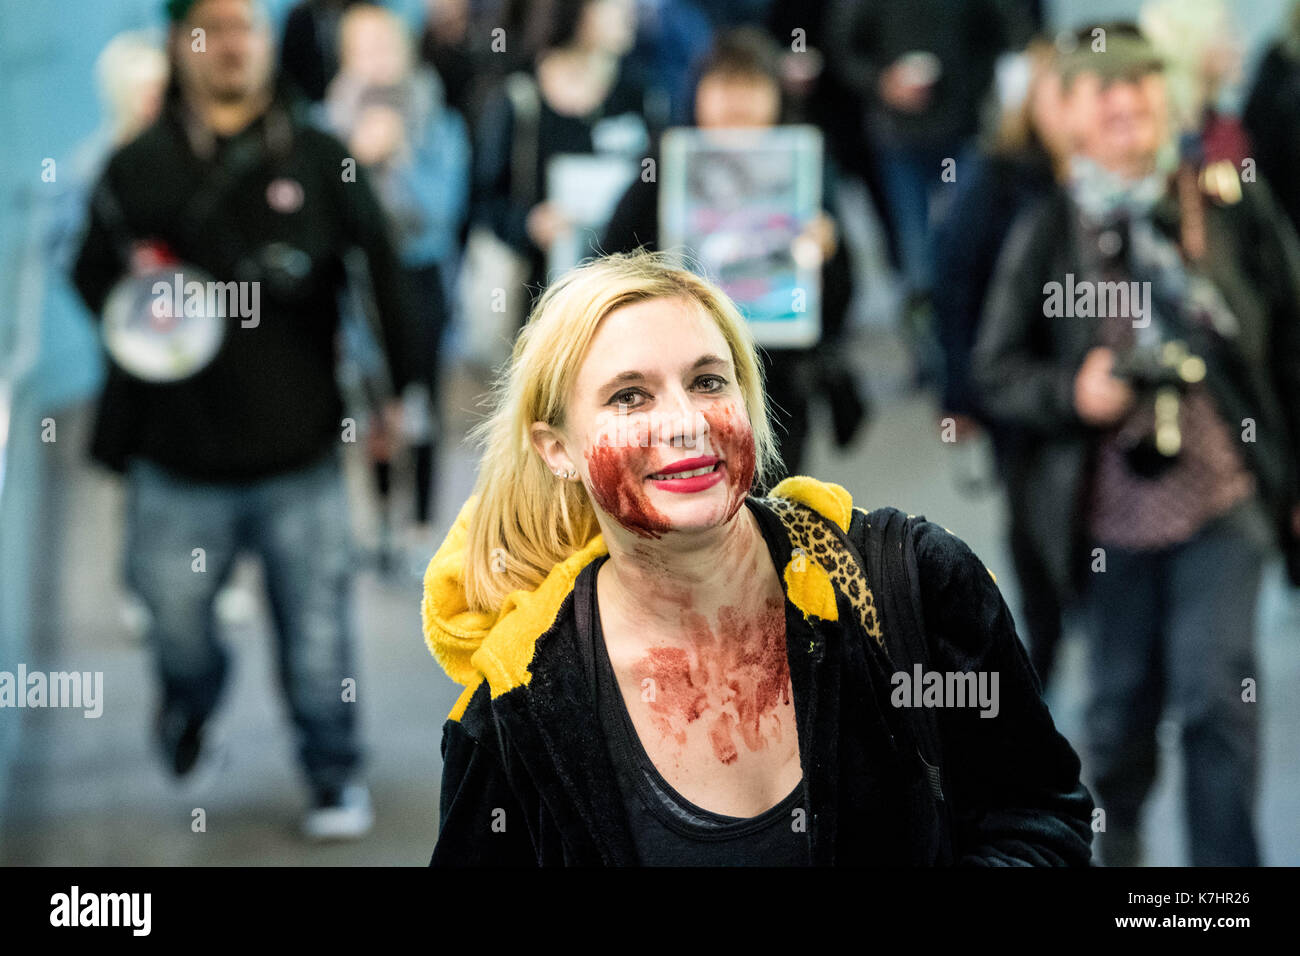 London 16th September 2017, Anti fur protesters picket the Gareth Pugh LFW17 presentation at the BFI IMAX protesters left the event and went to Waterloo station to picket another event Credit: Ian Davidson/Alamy Live News - Stock Image